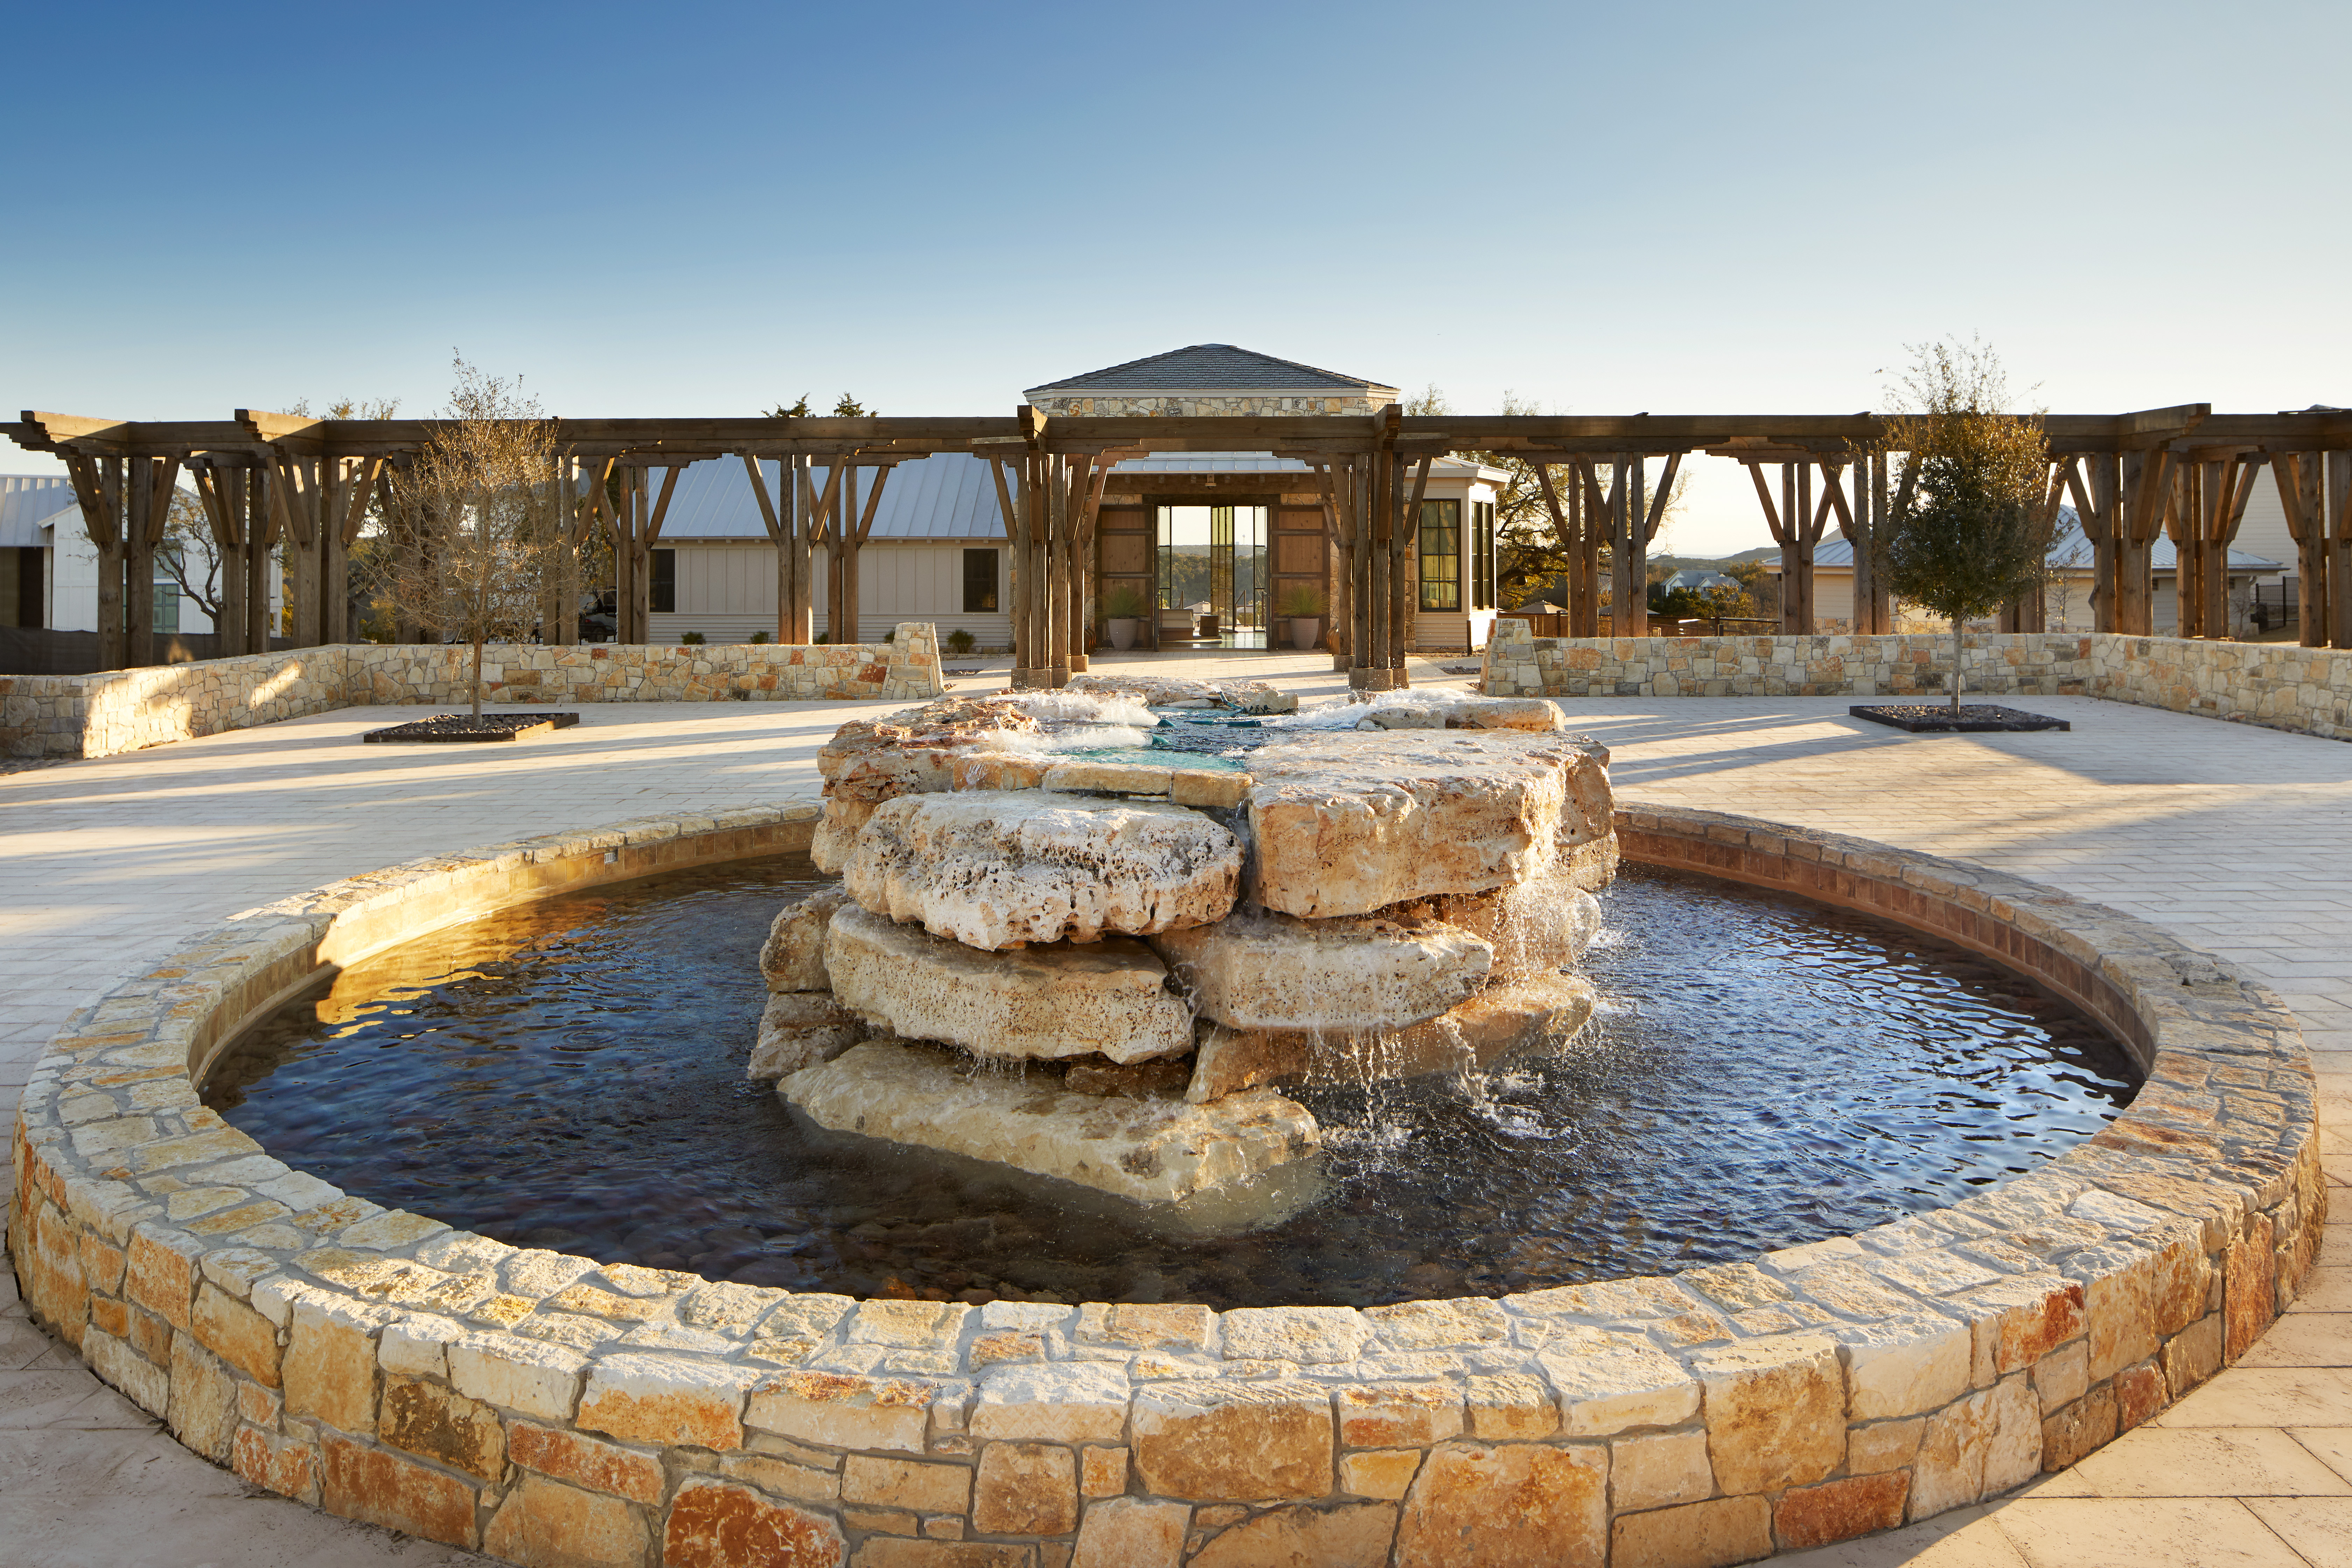 Outdoor Arrival Center // Courtesy of James Baigrie for Miraval Austin